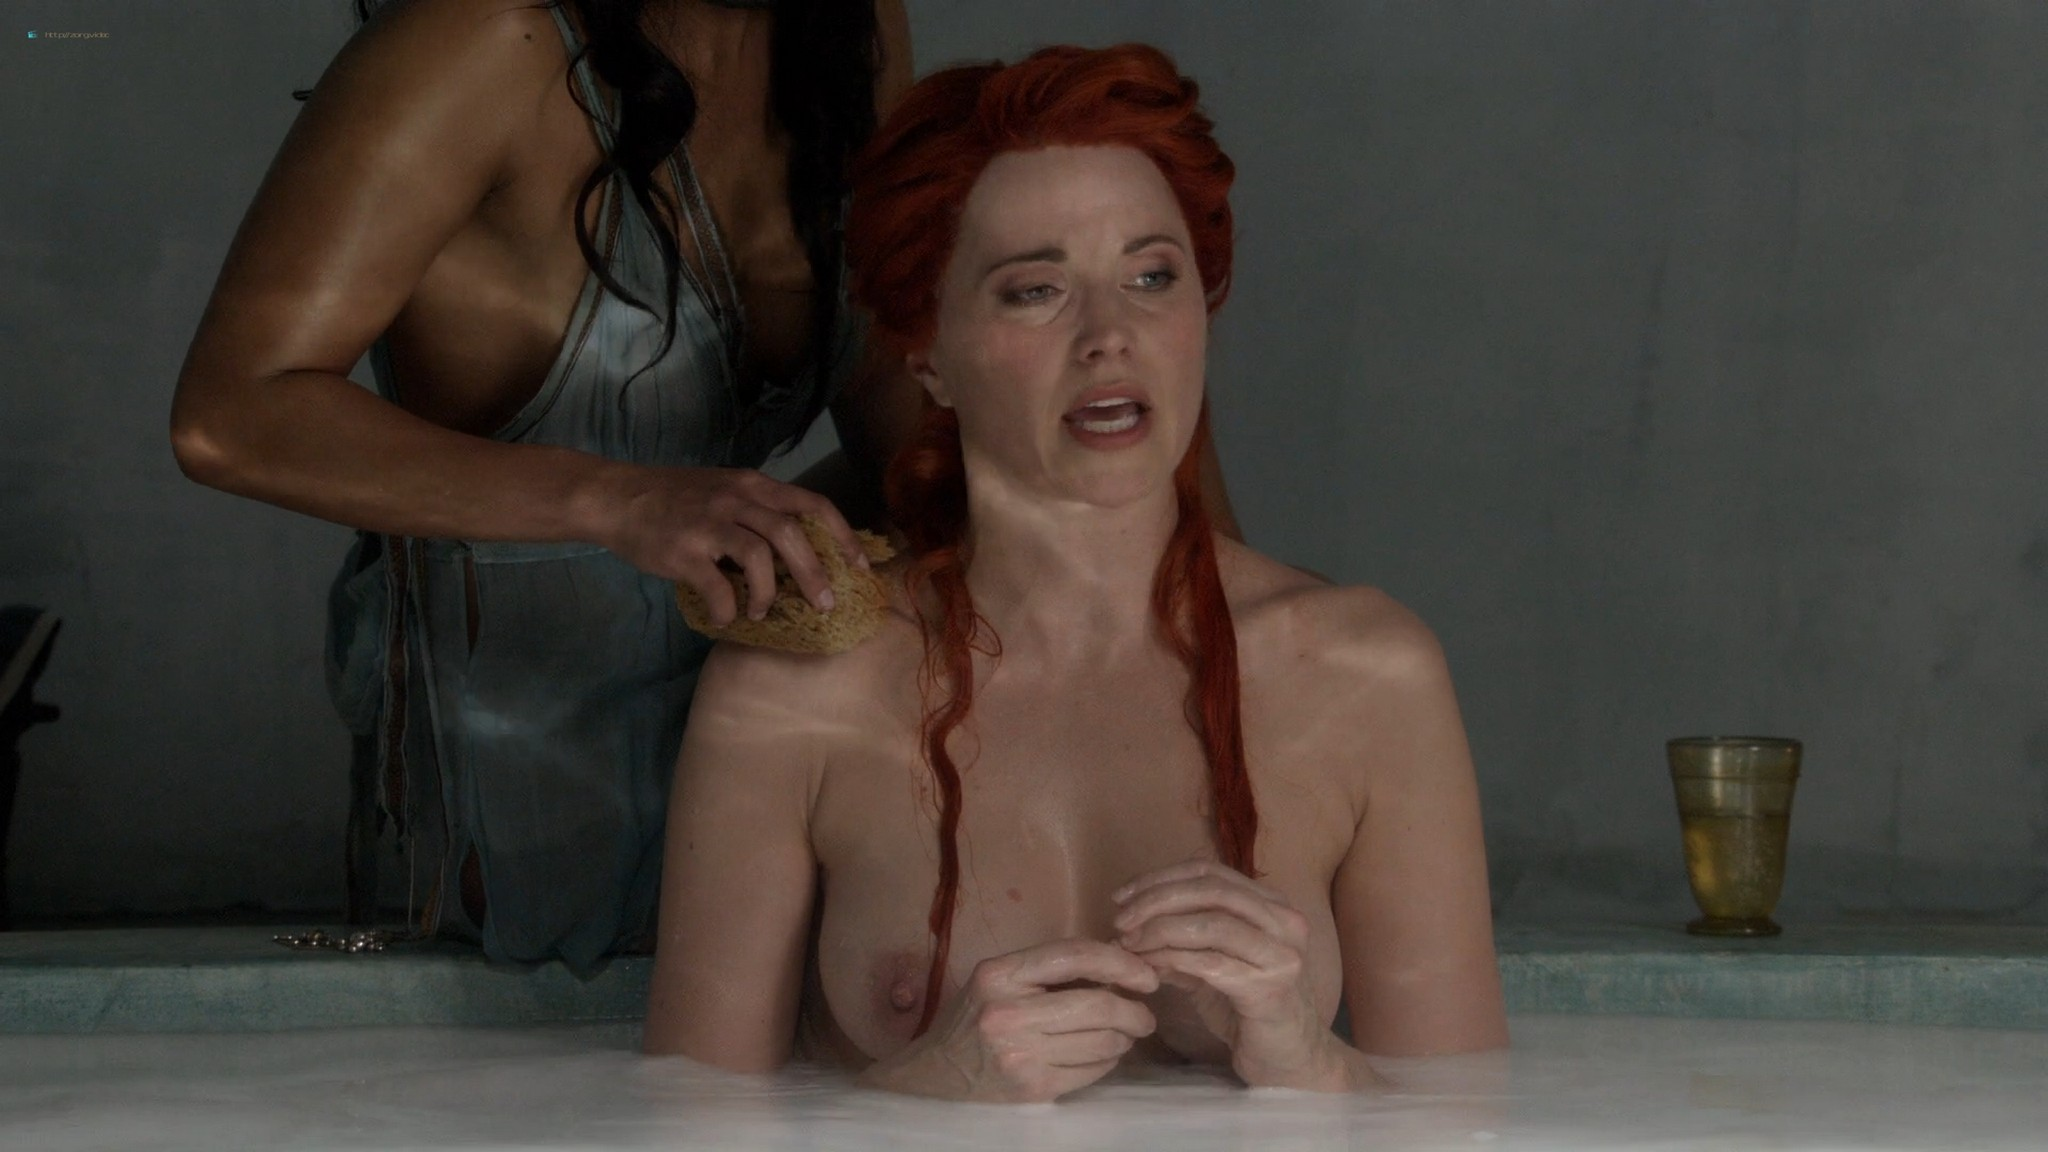 Lucy Lawless nude Katrina Law full-frontal Viva Bianca, etc nude - Spartacus (2010) Whore s1e9 HD 1080p BluRay (12)